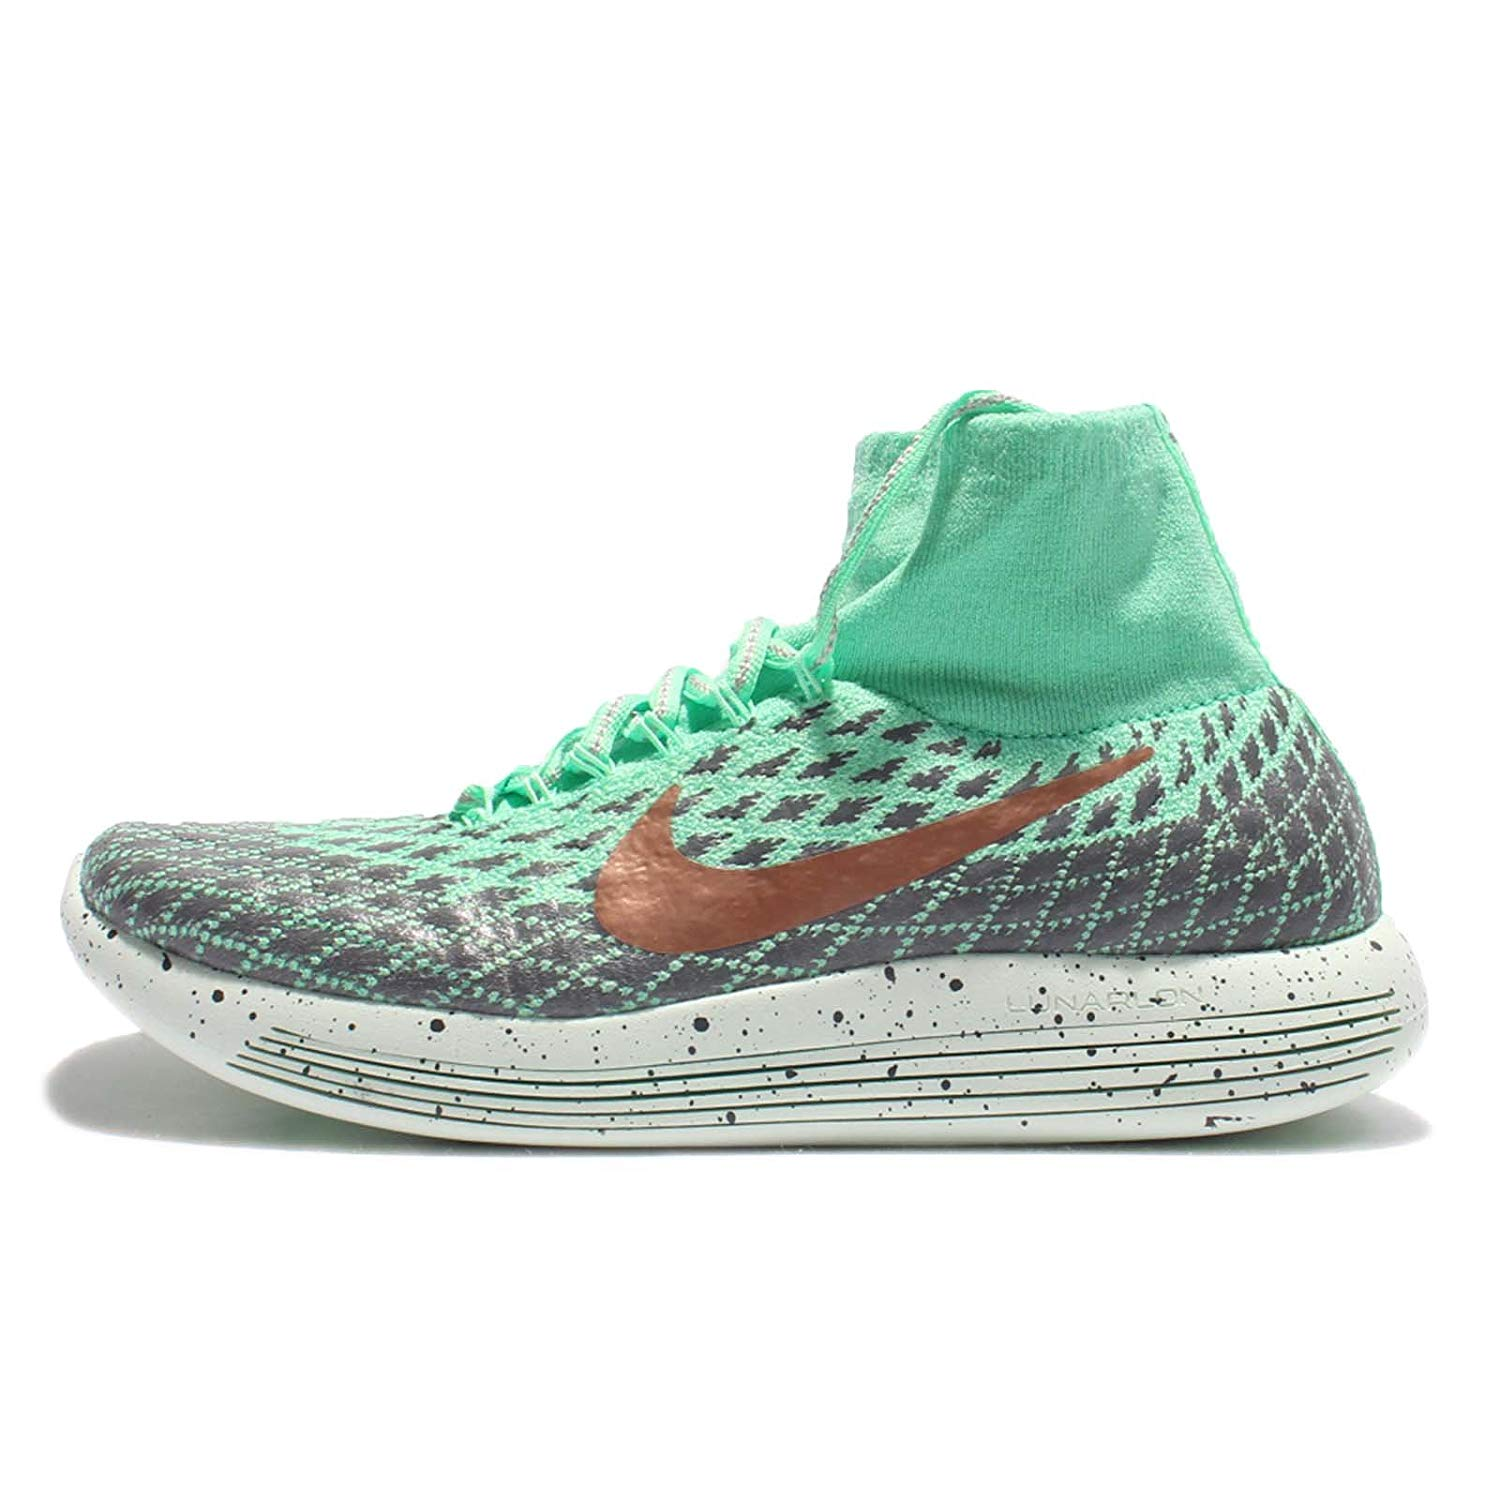 7f1edc763cc57 Details about NIKE Lunarepic Flyknit Running Women s Shoes